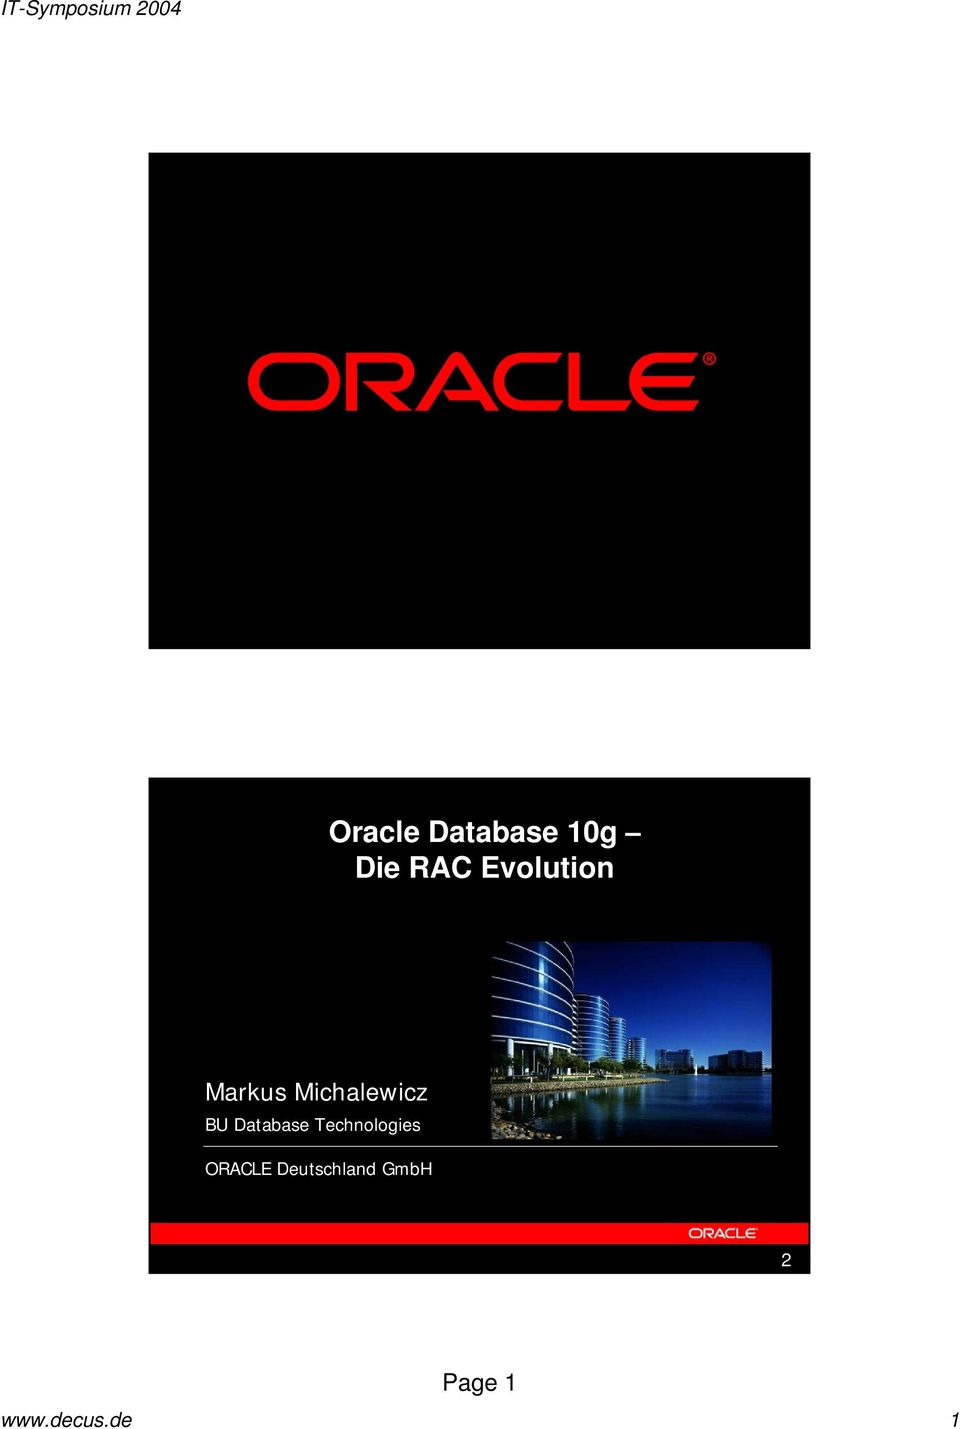 Oracle internet application server 10g download